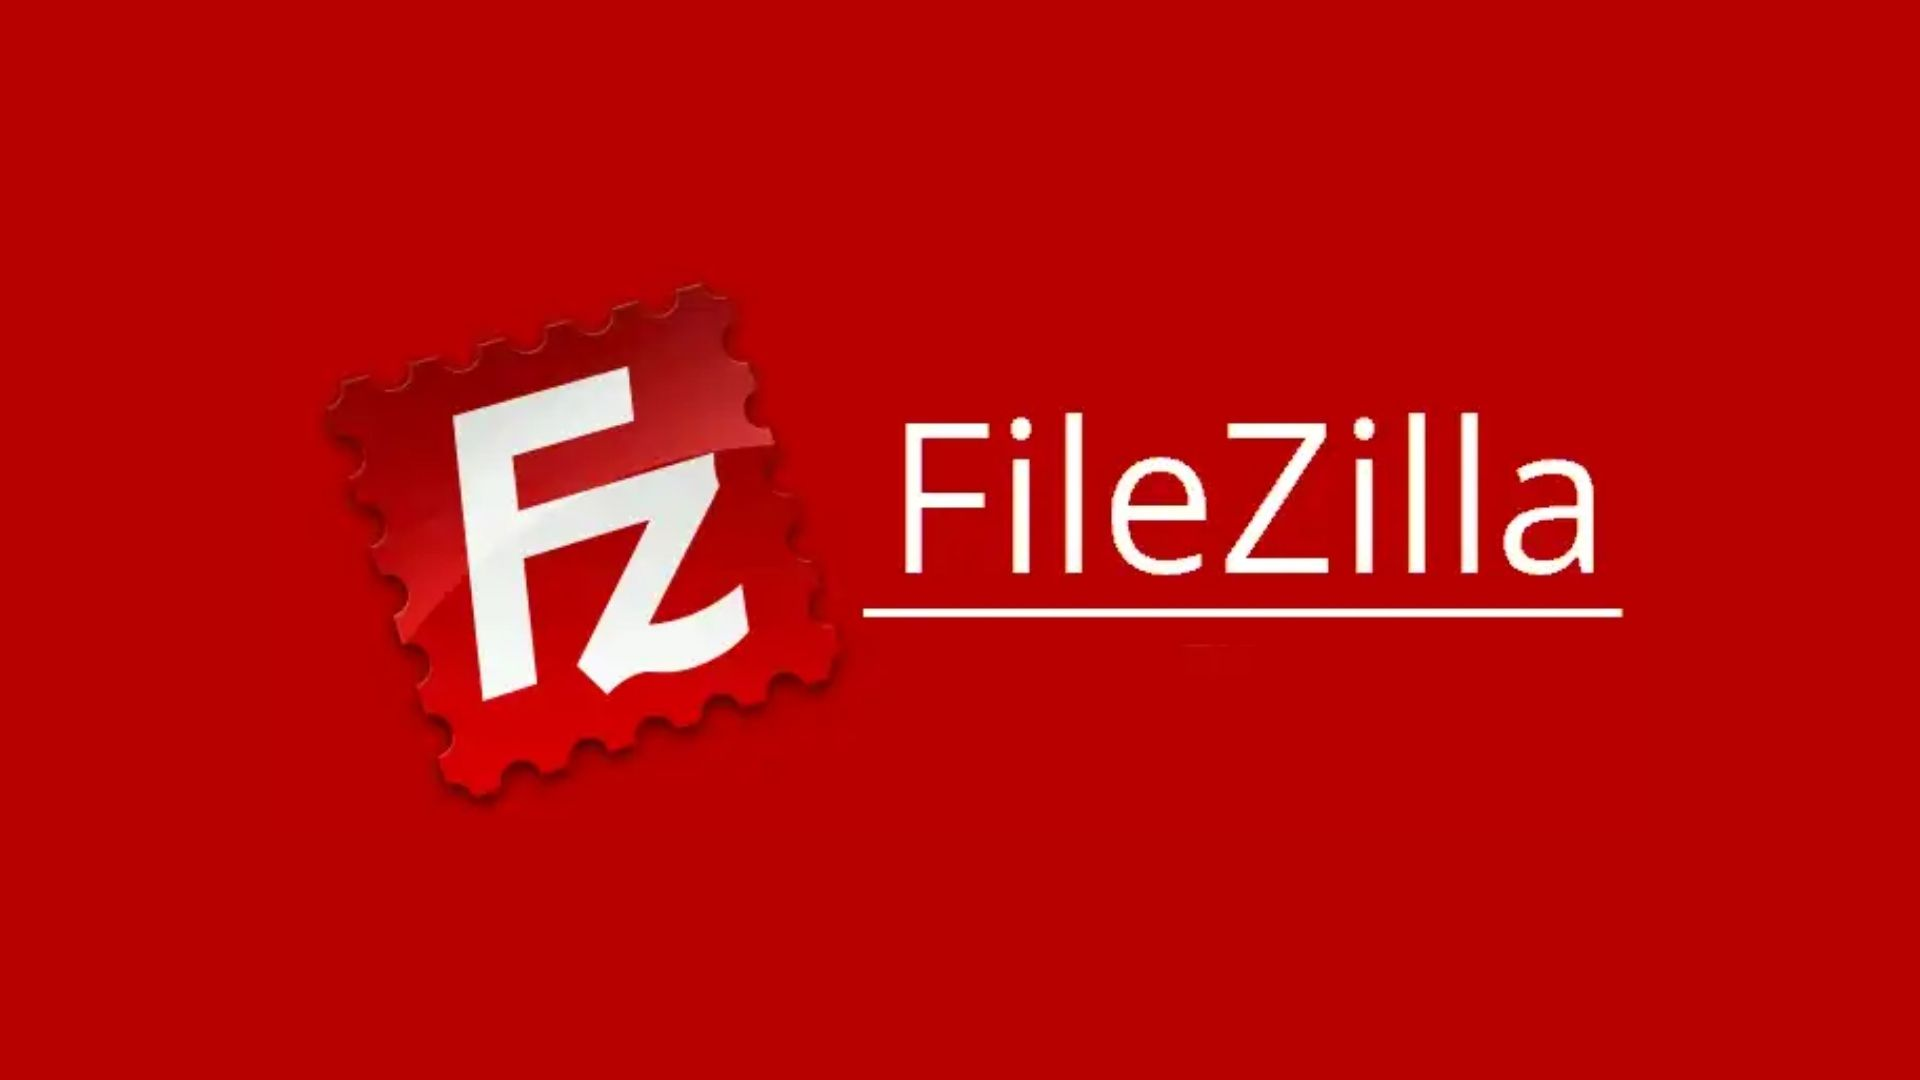 How to Install and Configure FileZilla